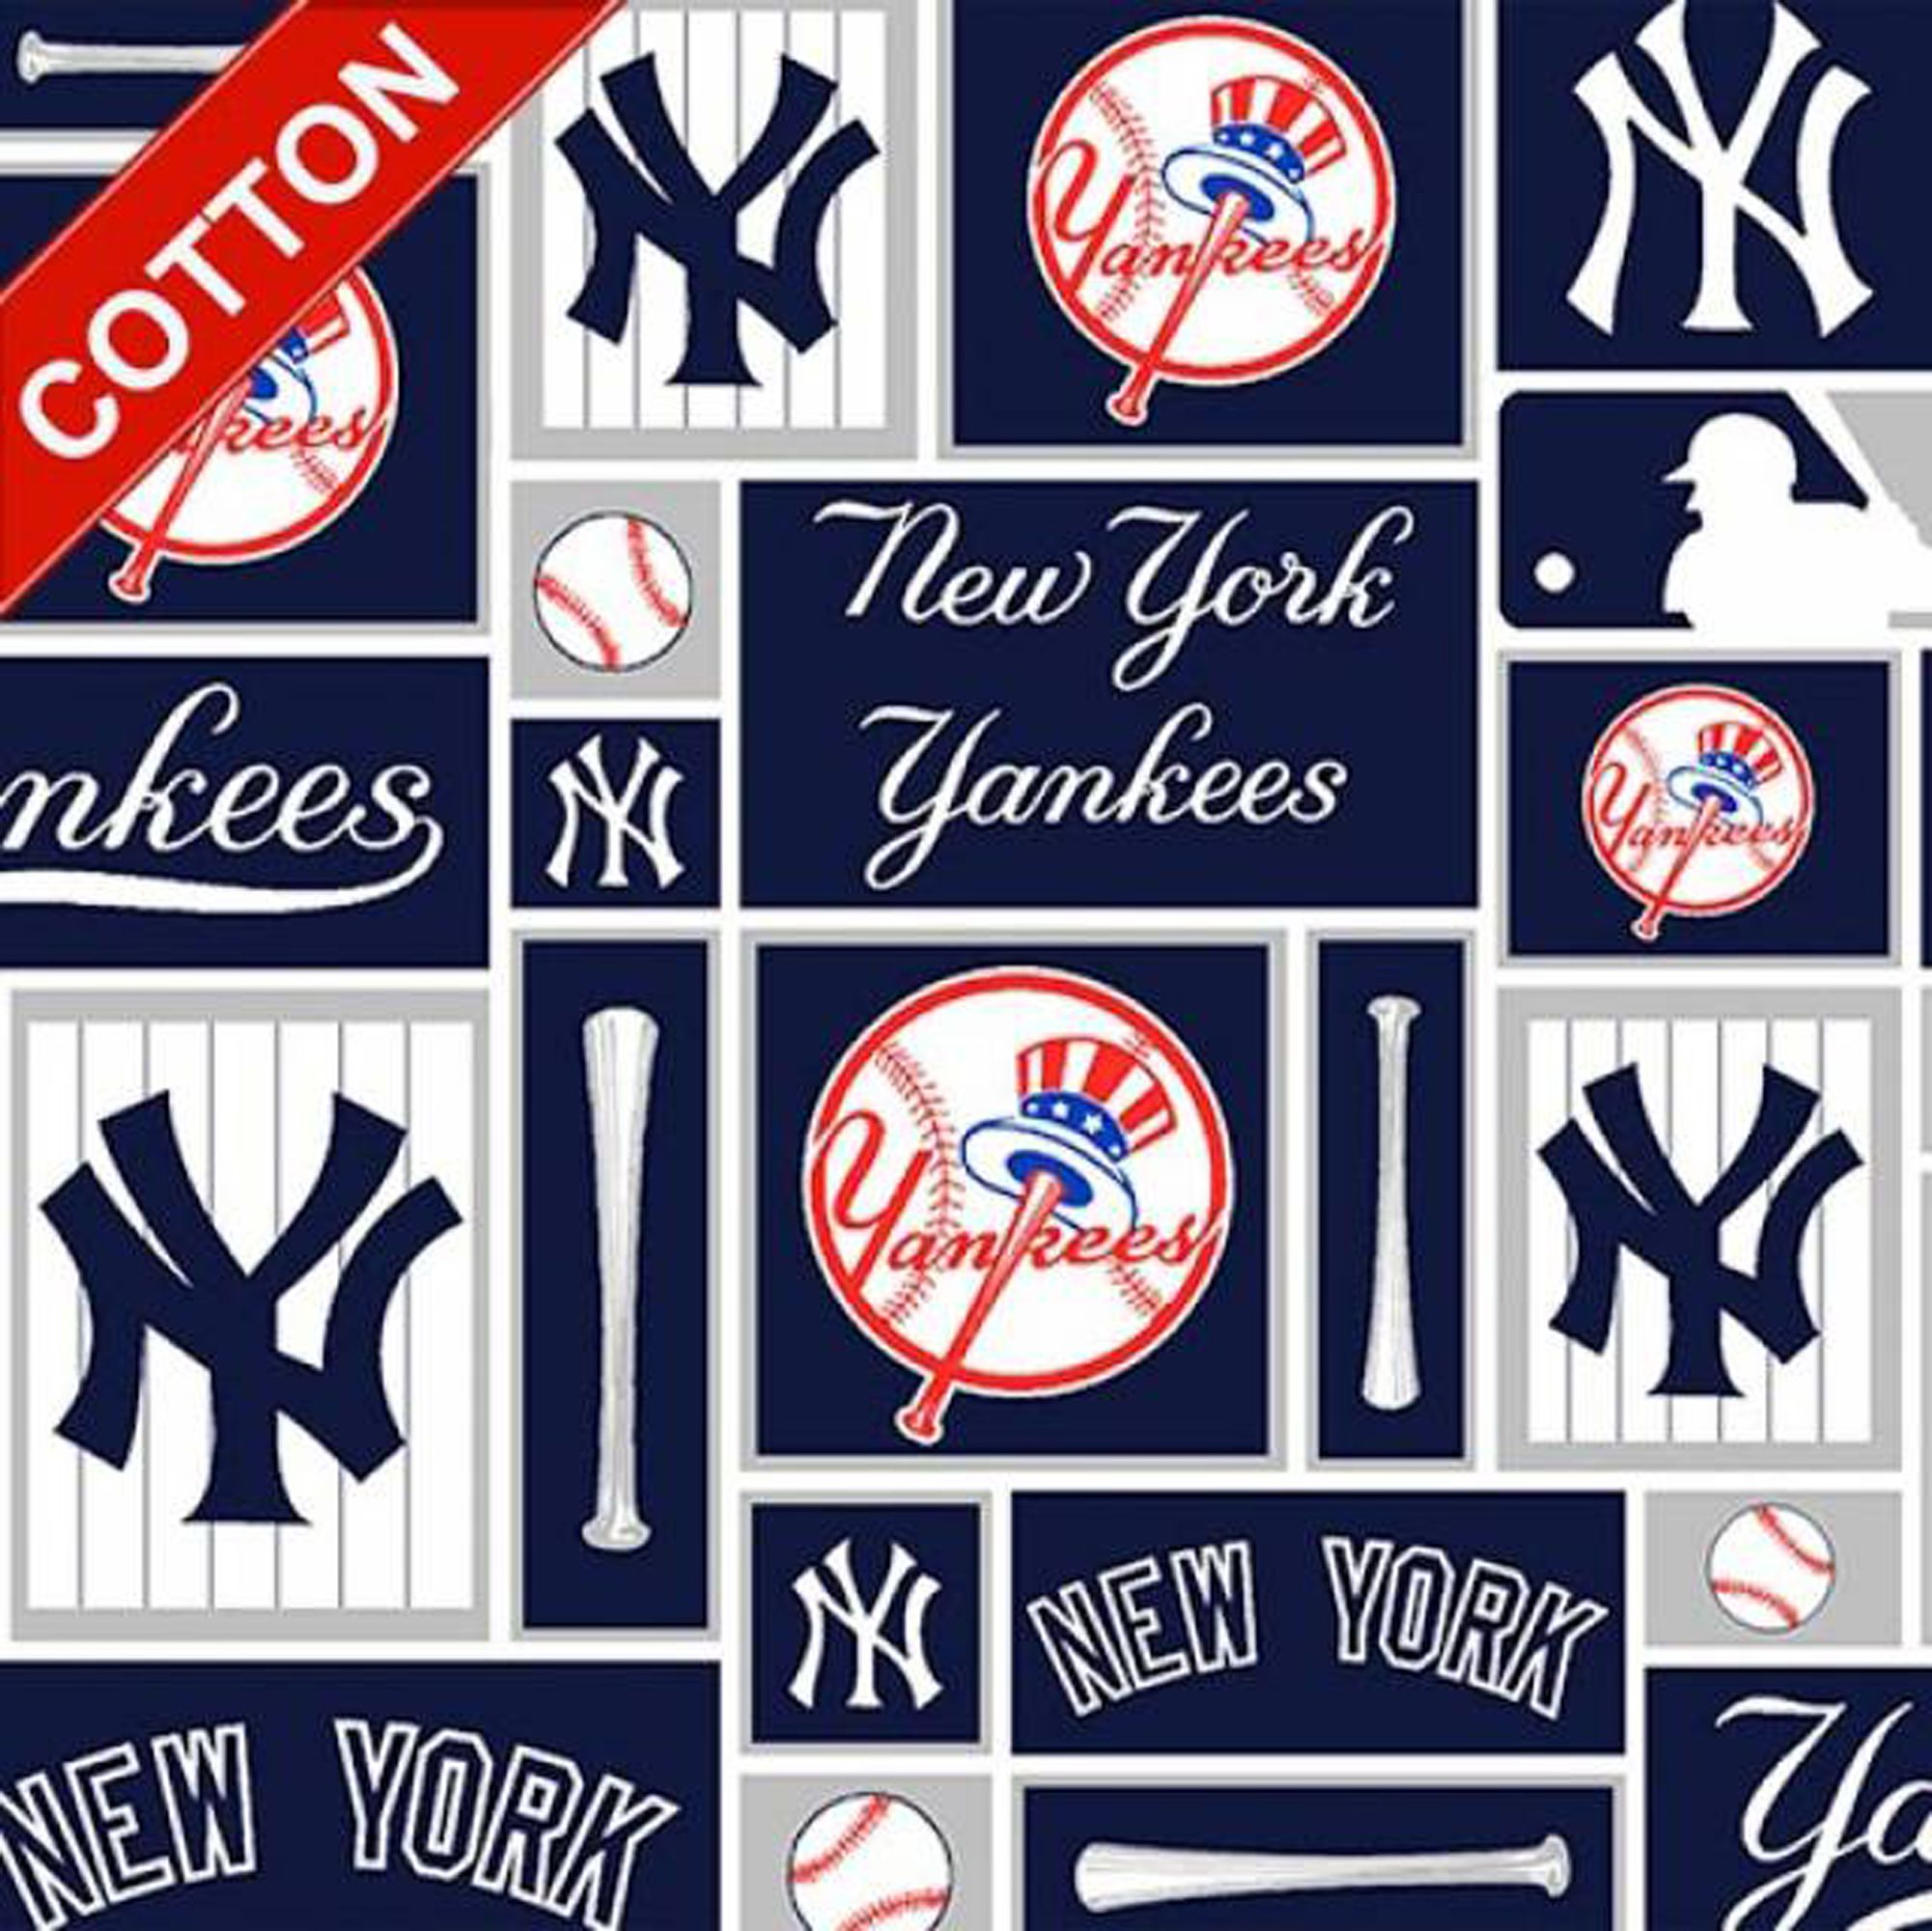 New York Yankees Blocks Cotton Fabric Mlb Cotton Fabric By The Yard In 2020 New York Yankees Baseball New York Yankees Yankees